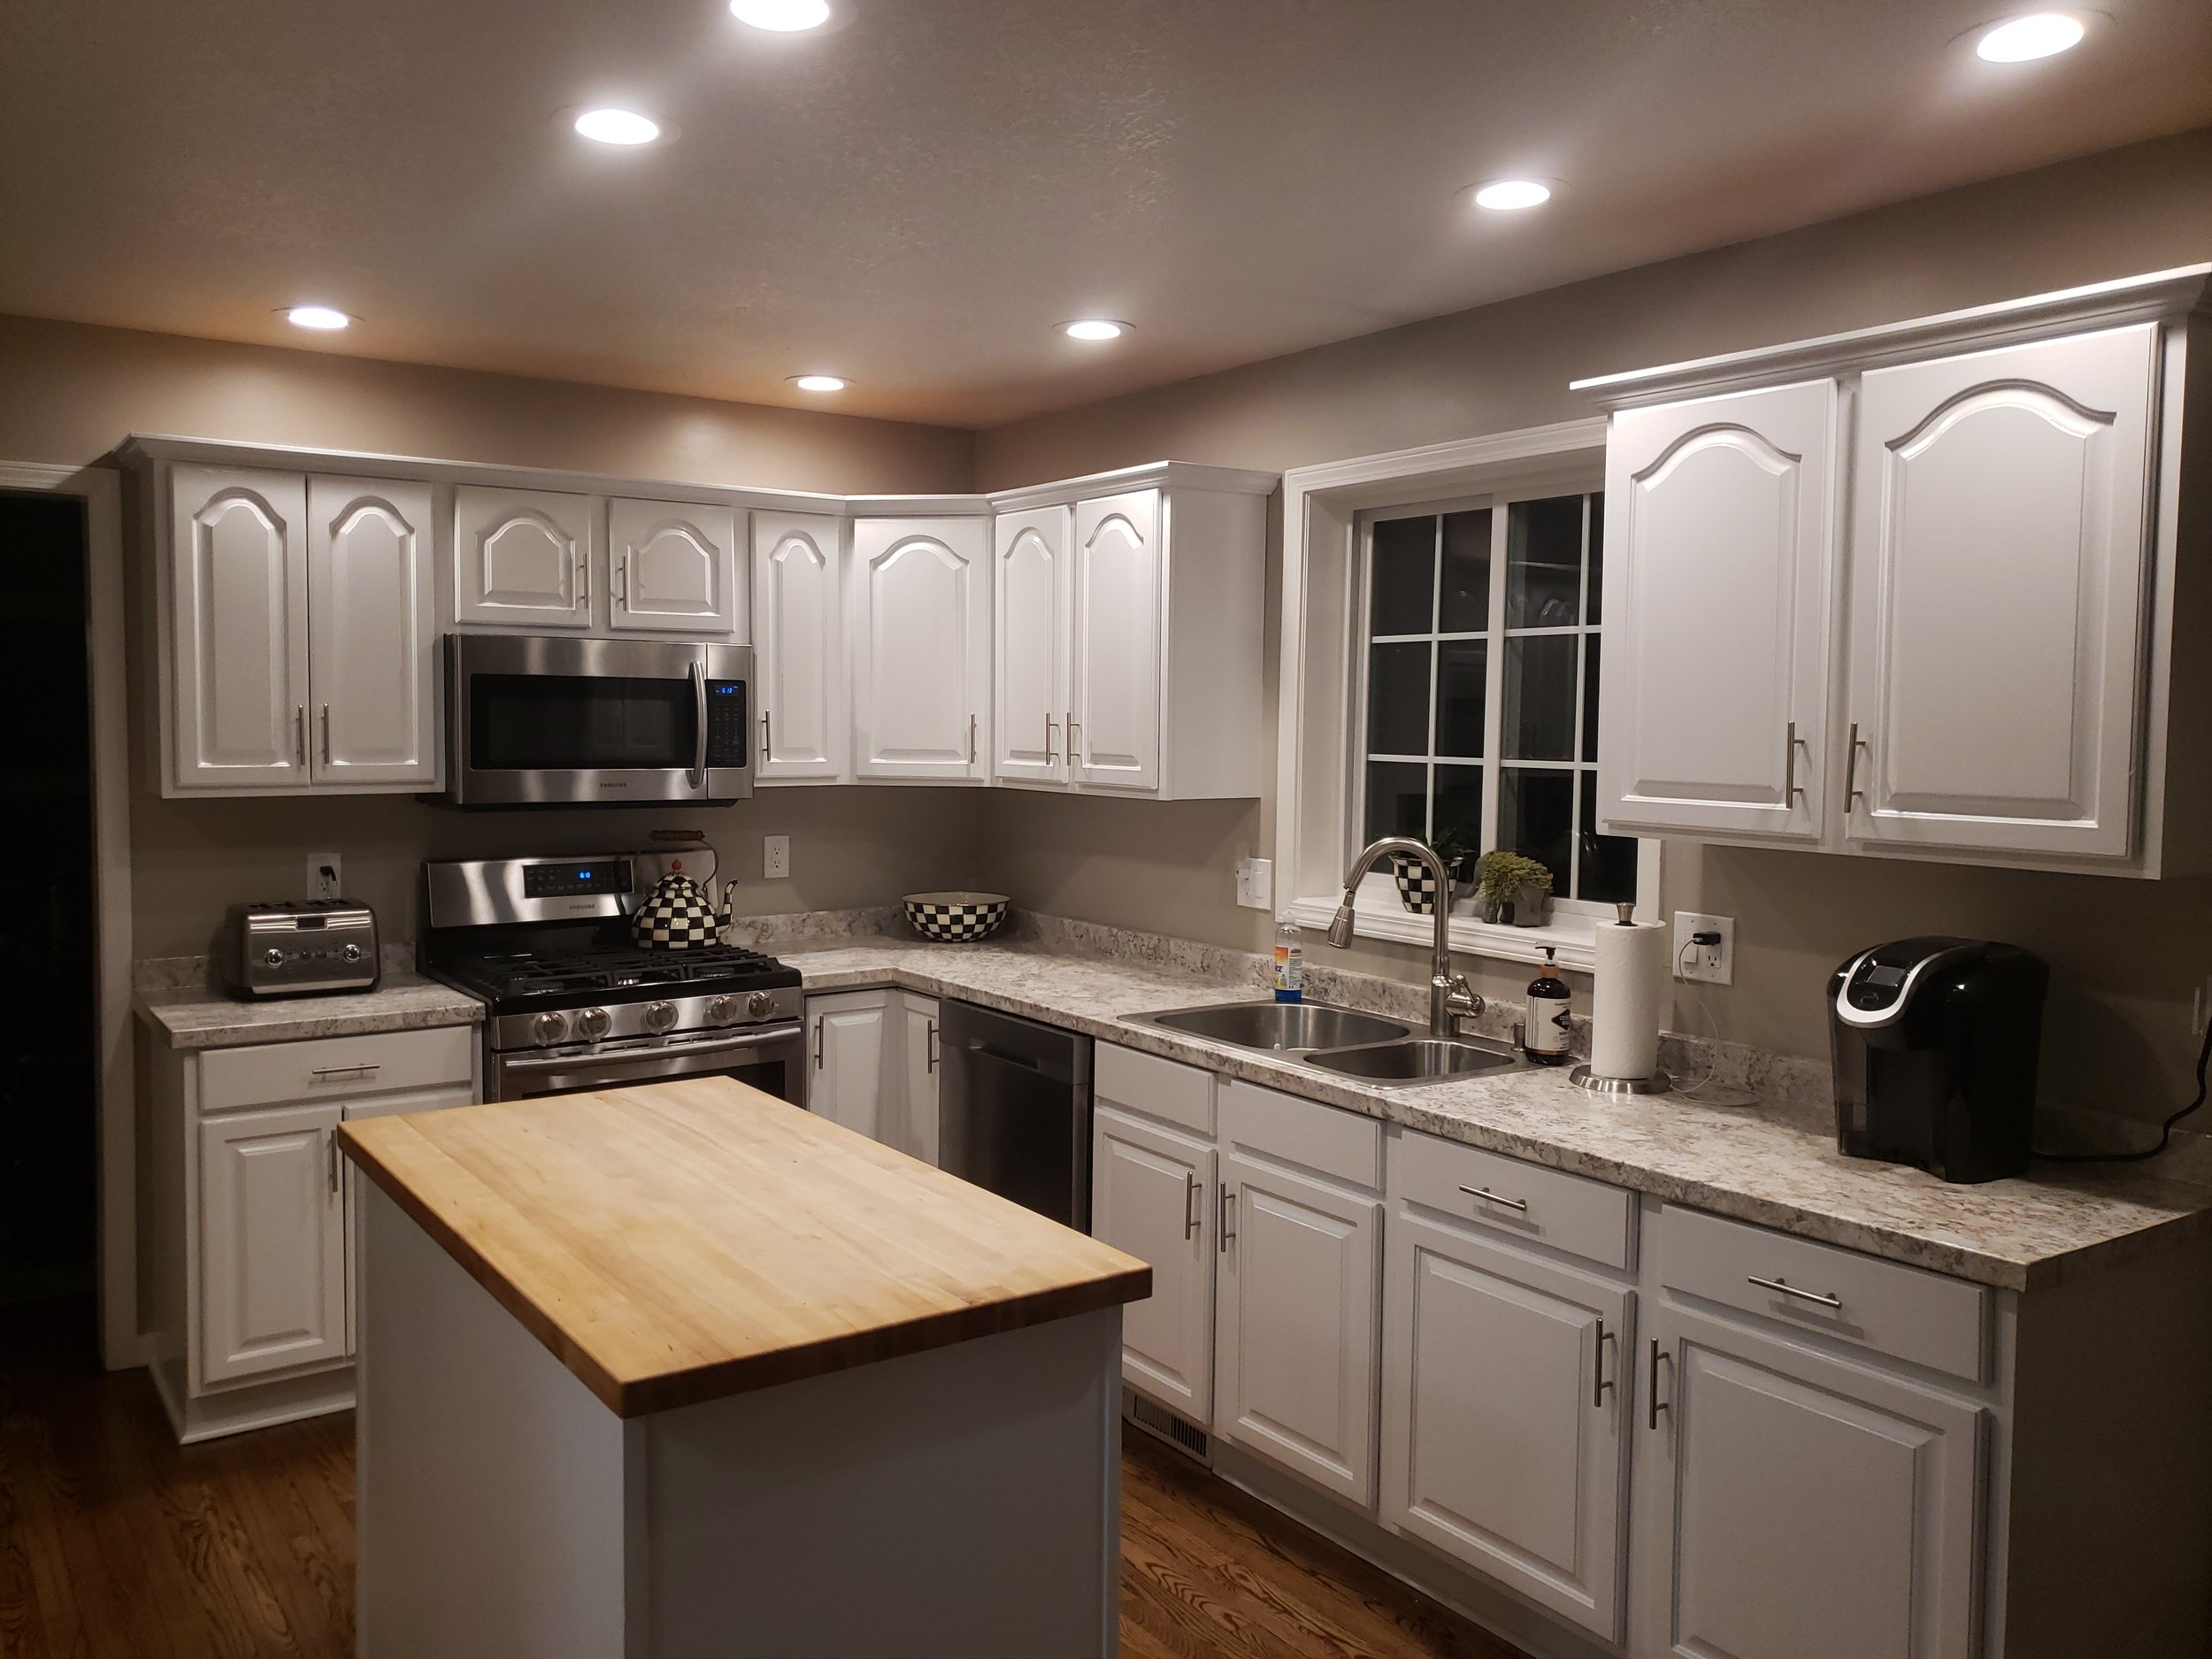 """"""" Josh did a fantastic job on our kitchen cabinets. His attention to detail was much appreciated! """"   -Maggie M."""